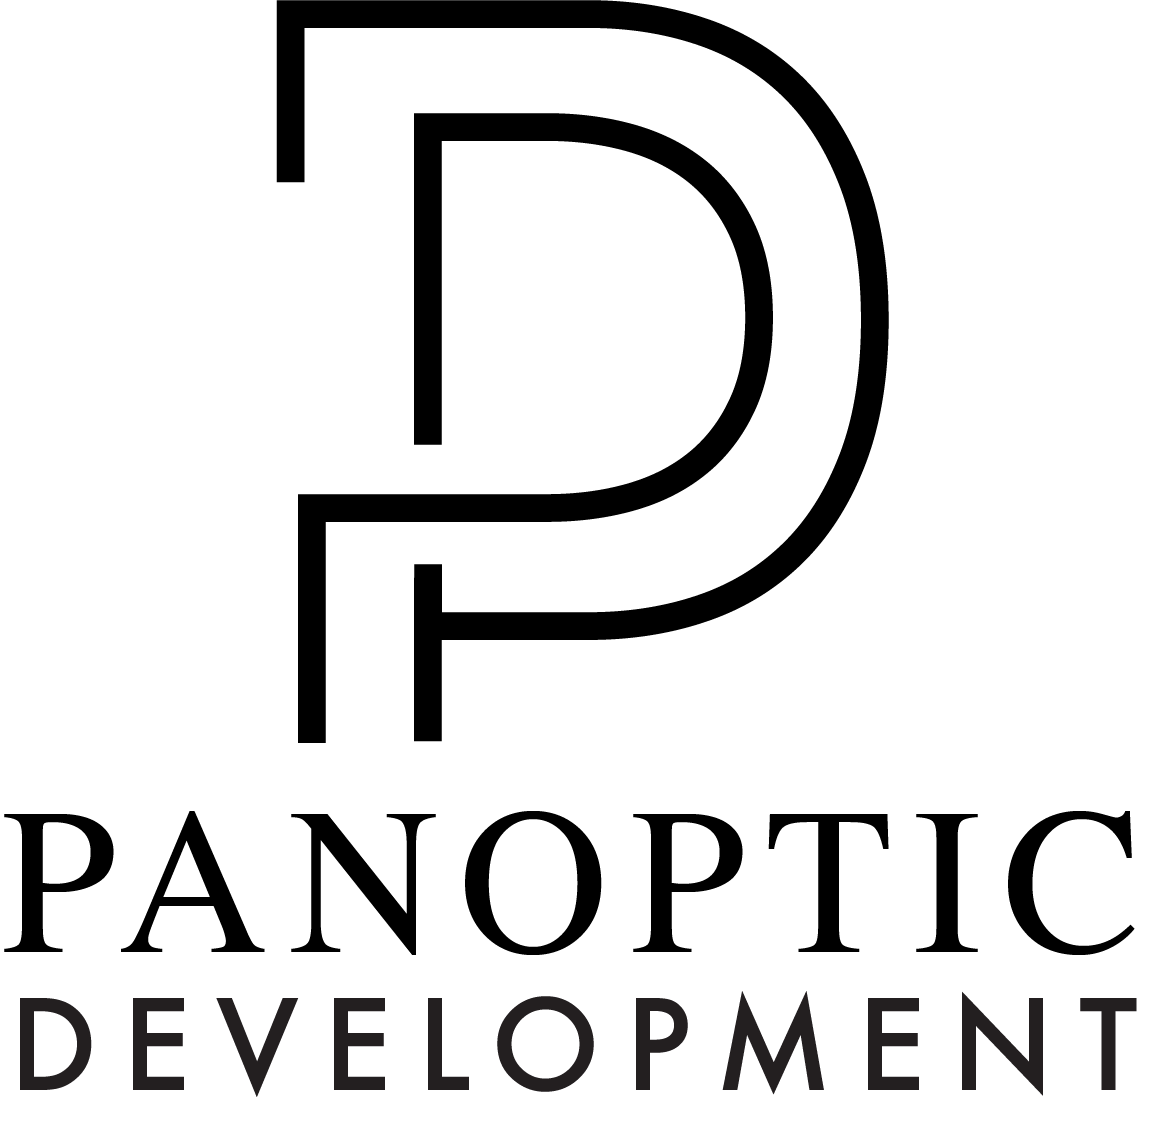 Panoptic Development